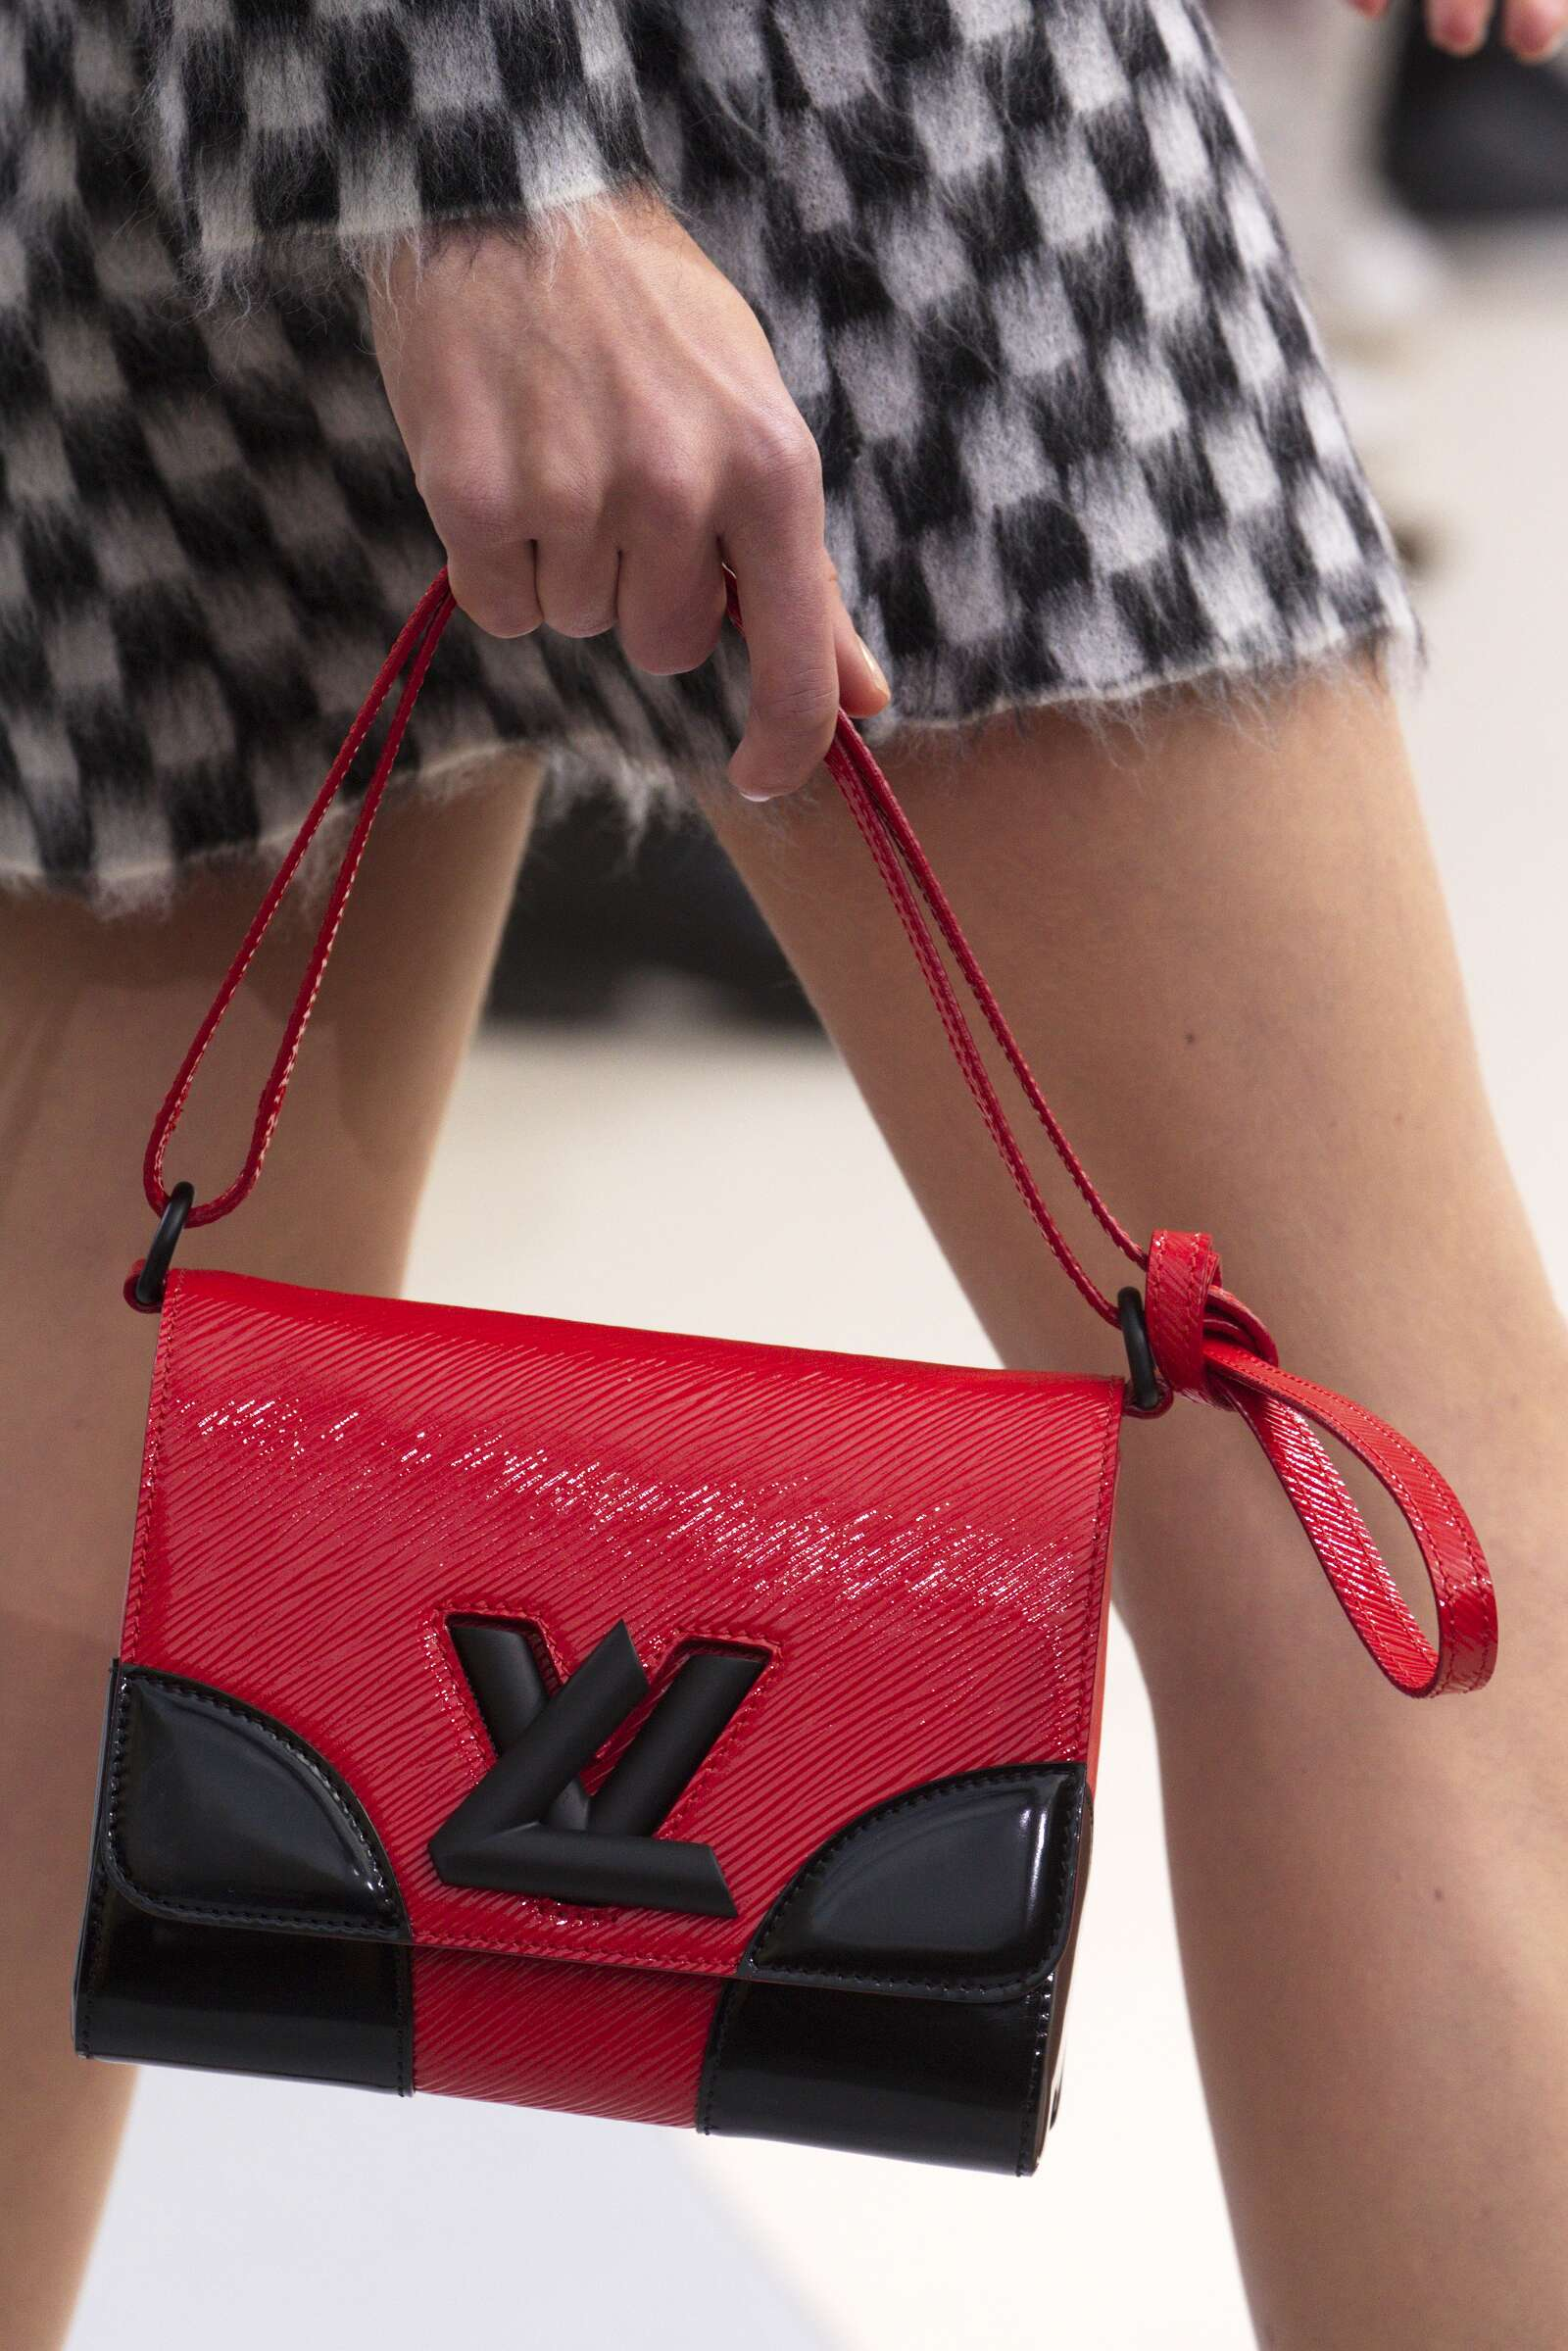 Louis Vuitton Bag Details Collection Women Style